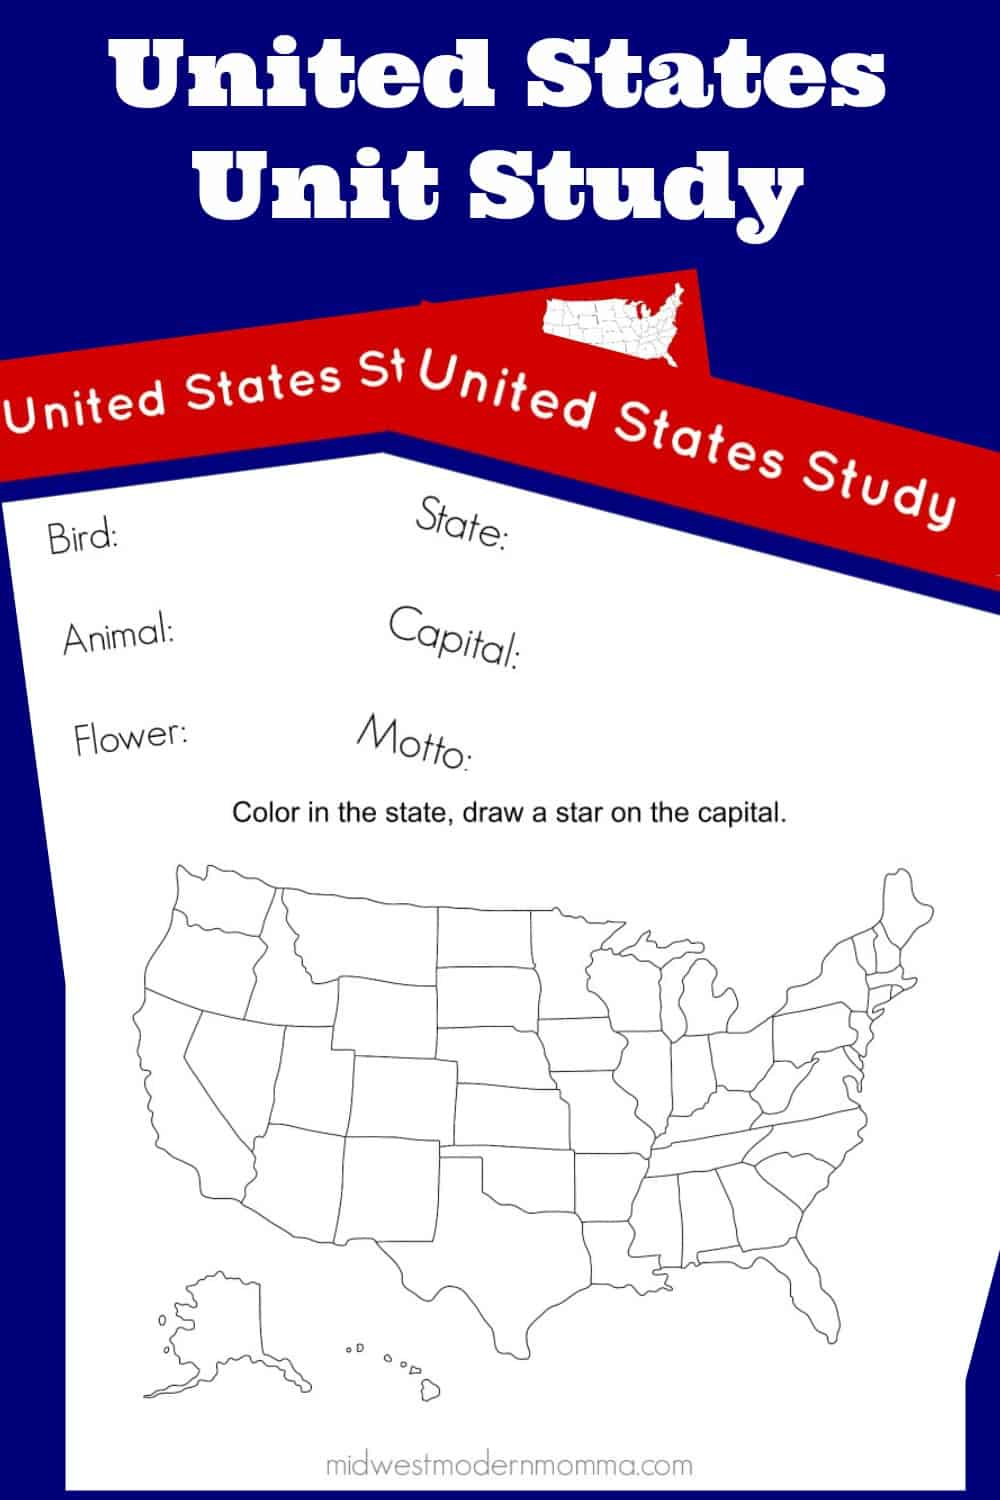 If you are looking for a free homeschool curriculum to teach your kids about the United States, we have a great United States unit study. This includes some amazing free printables that you can utilize in your classroom while working with your kids. This free homeschool curriculum is easy to adjust to any age range.